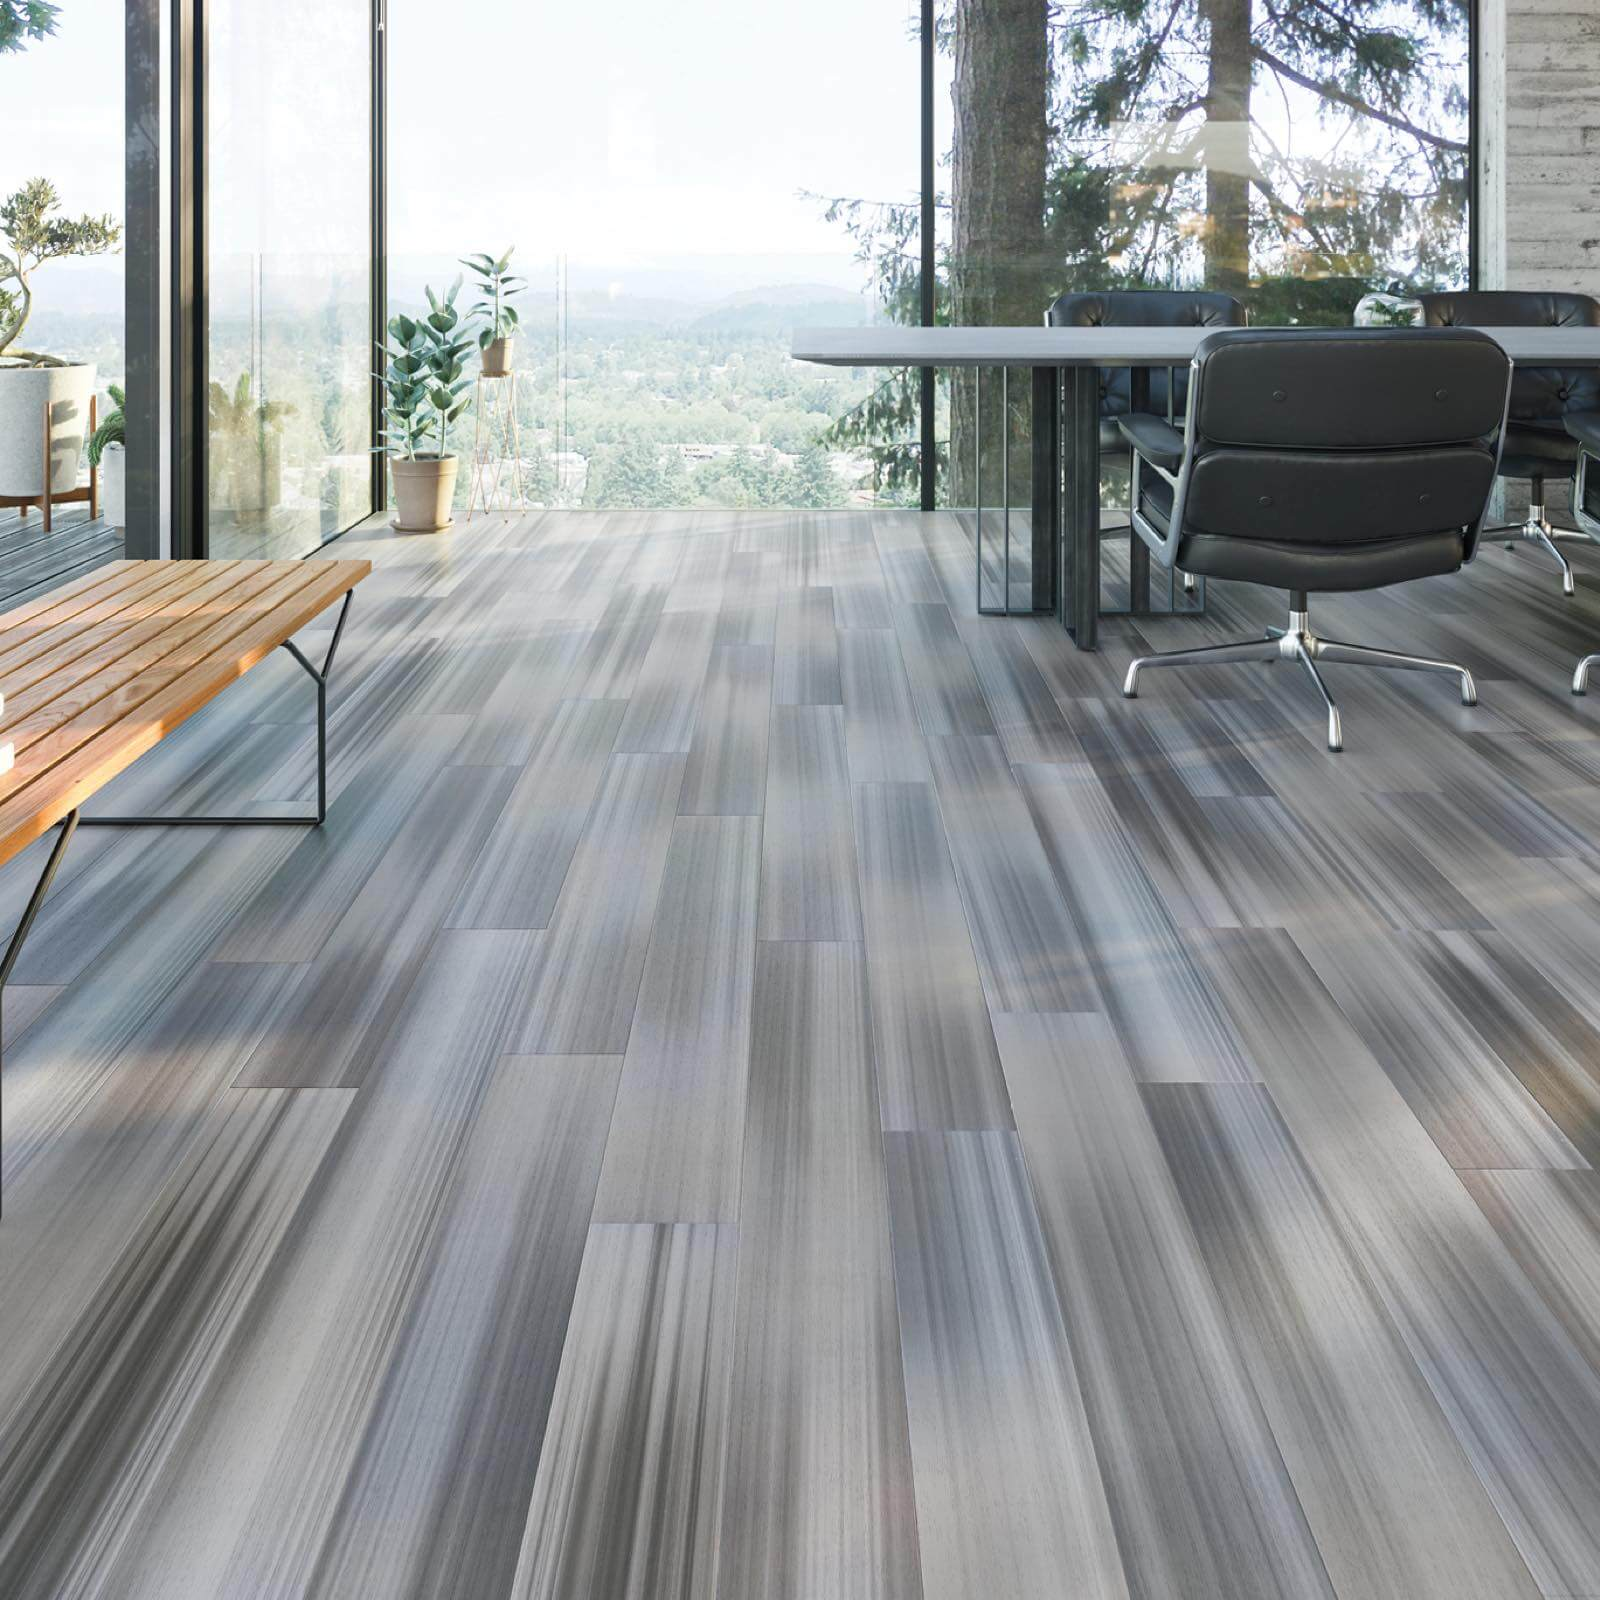 Mannington Commercial Flooring | Leaf Floor Covering